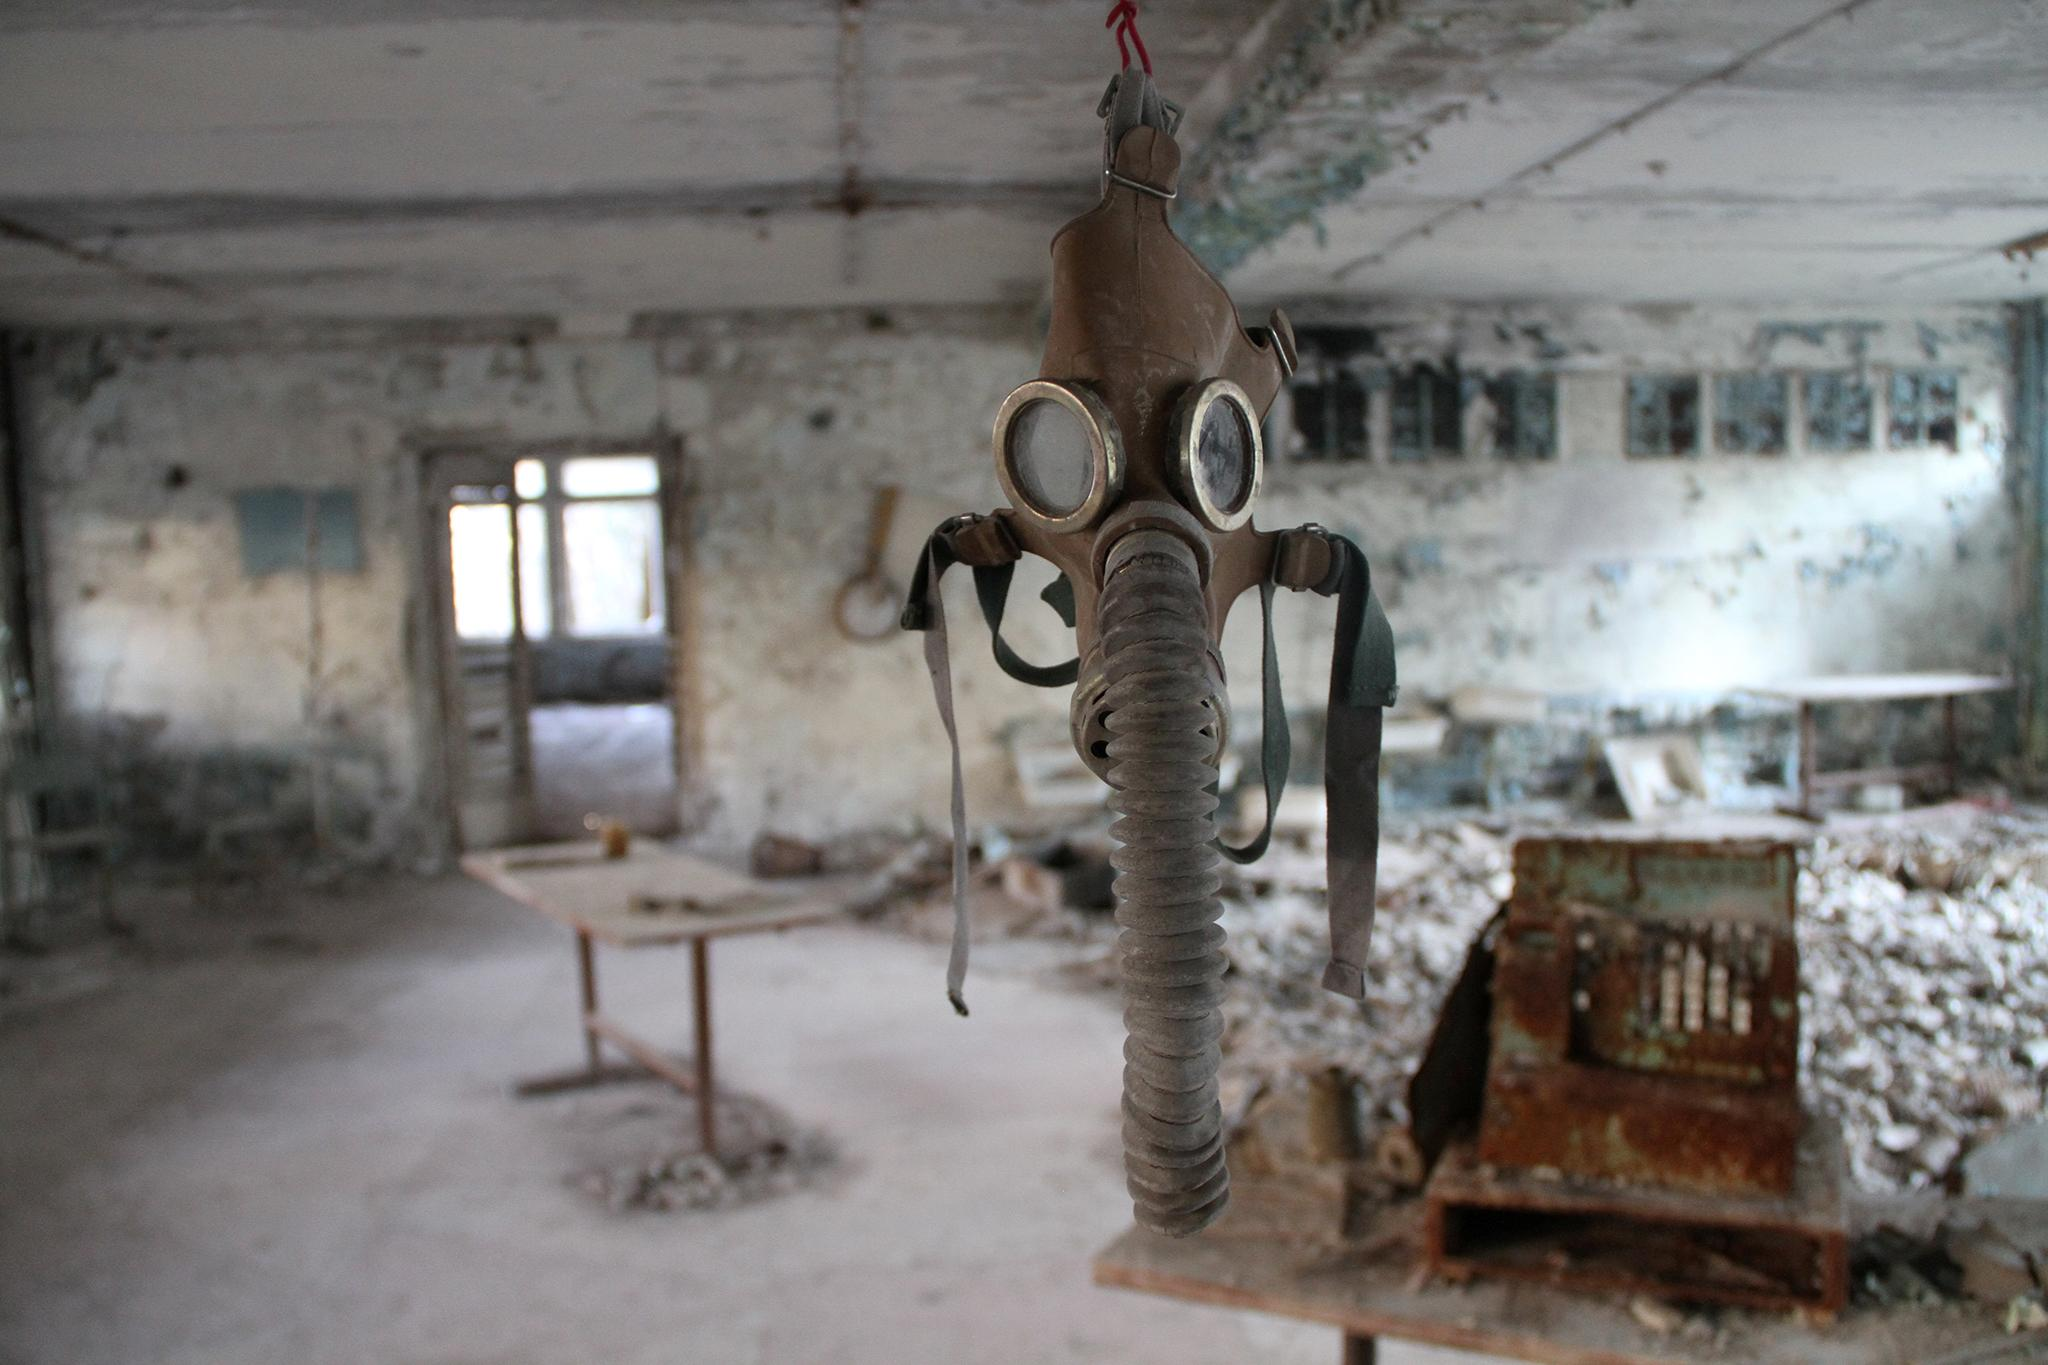 Chernobyl: Photos show illegal urban tours around abandoned